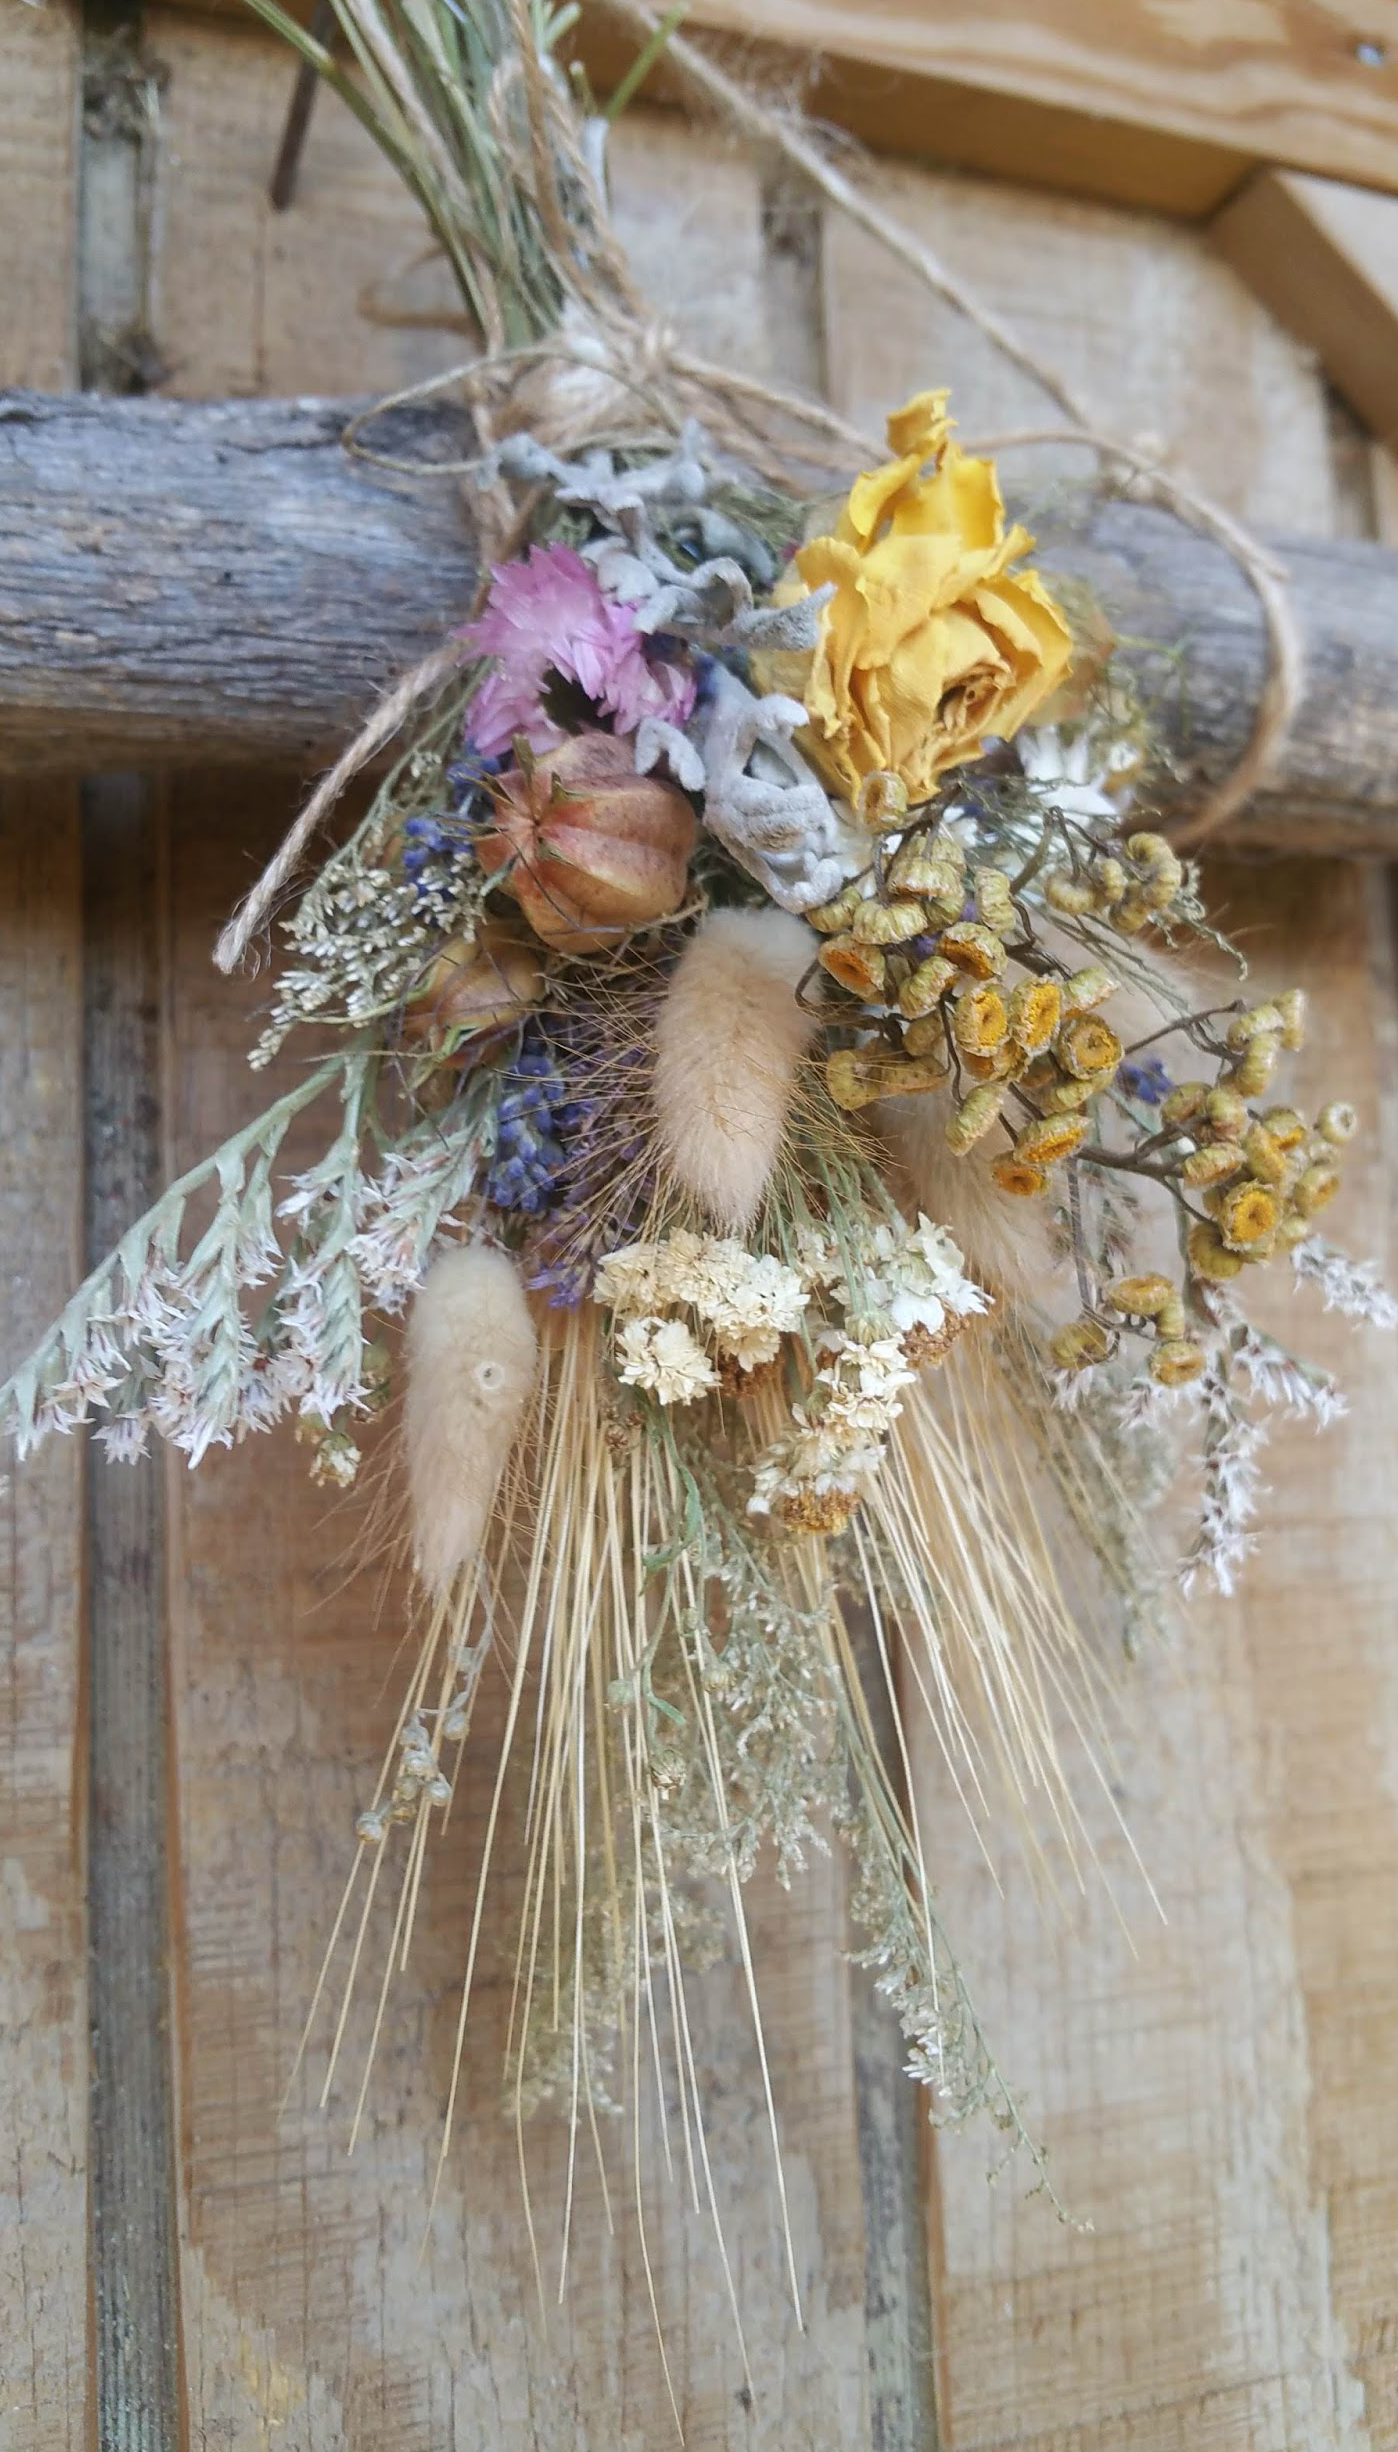 Nature's Bounty Dried Herb Dried Floral Ornament-Spring theme Decoration